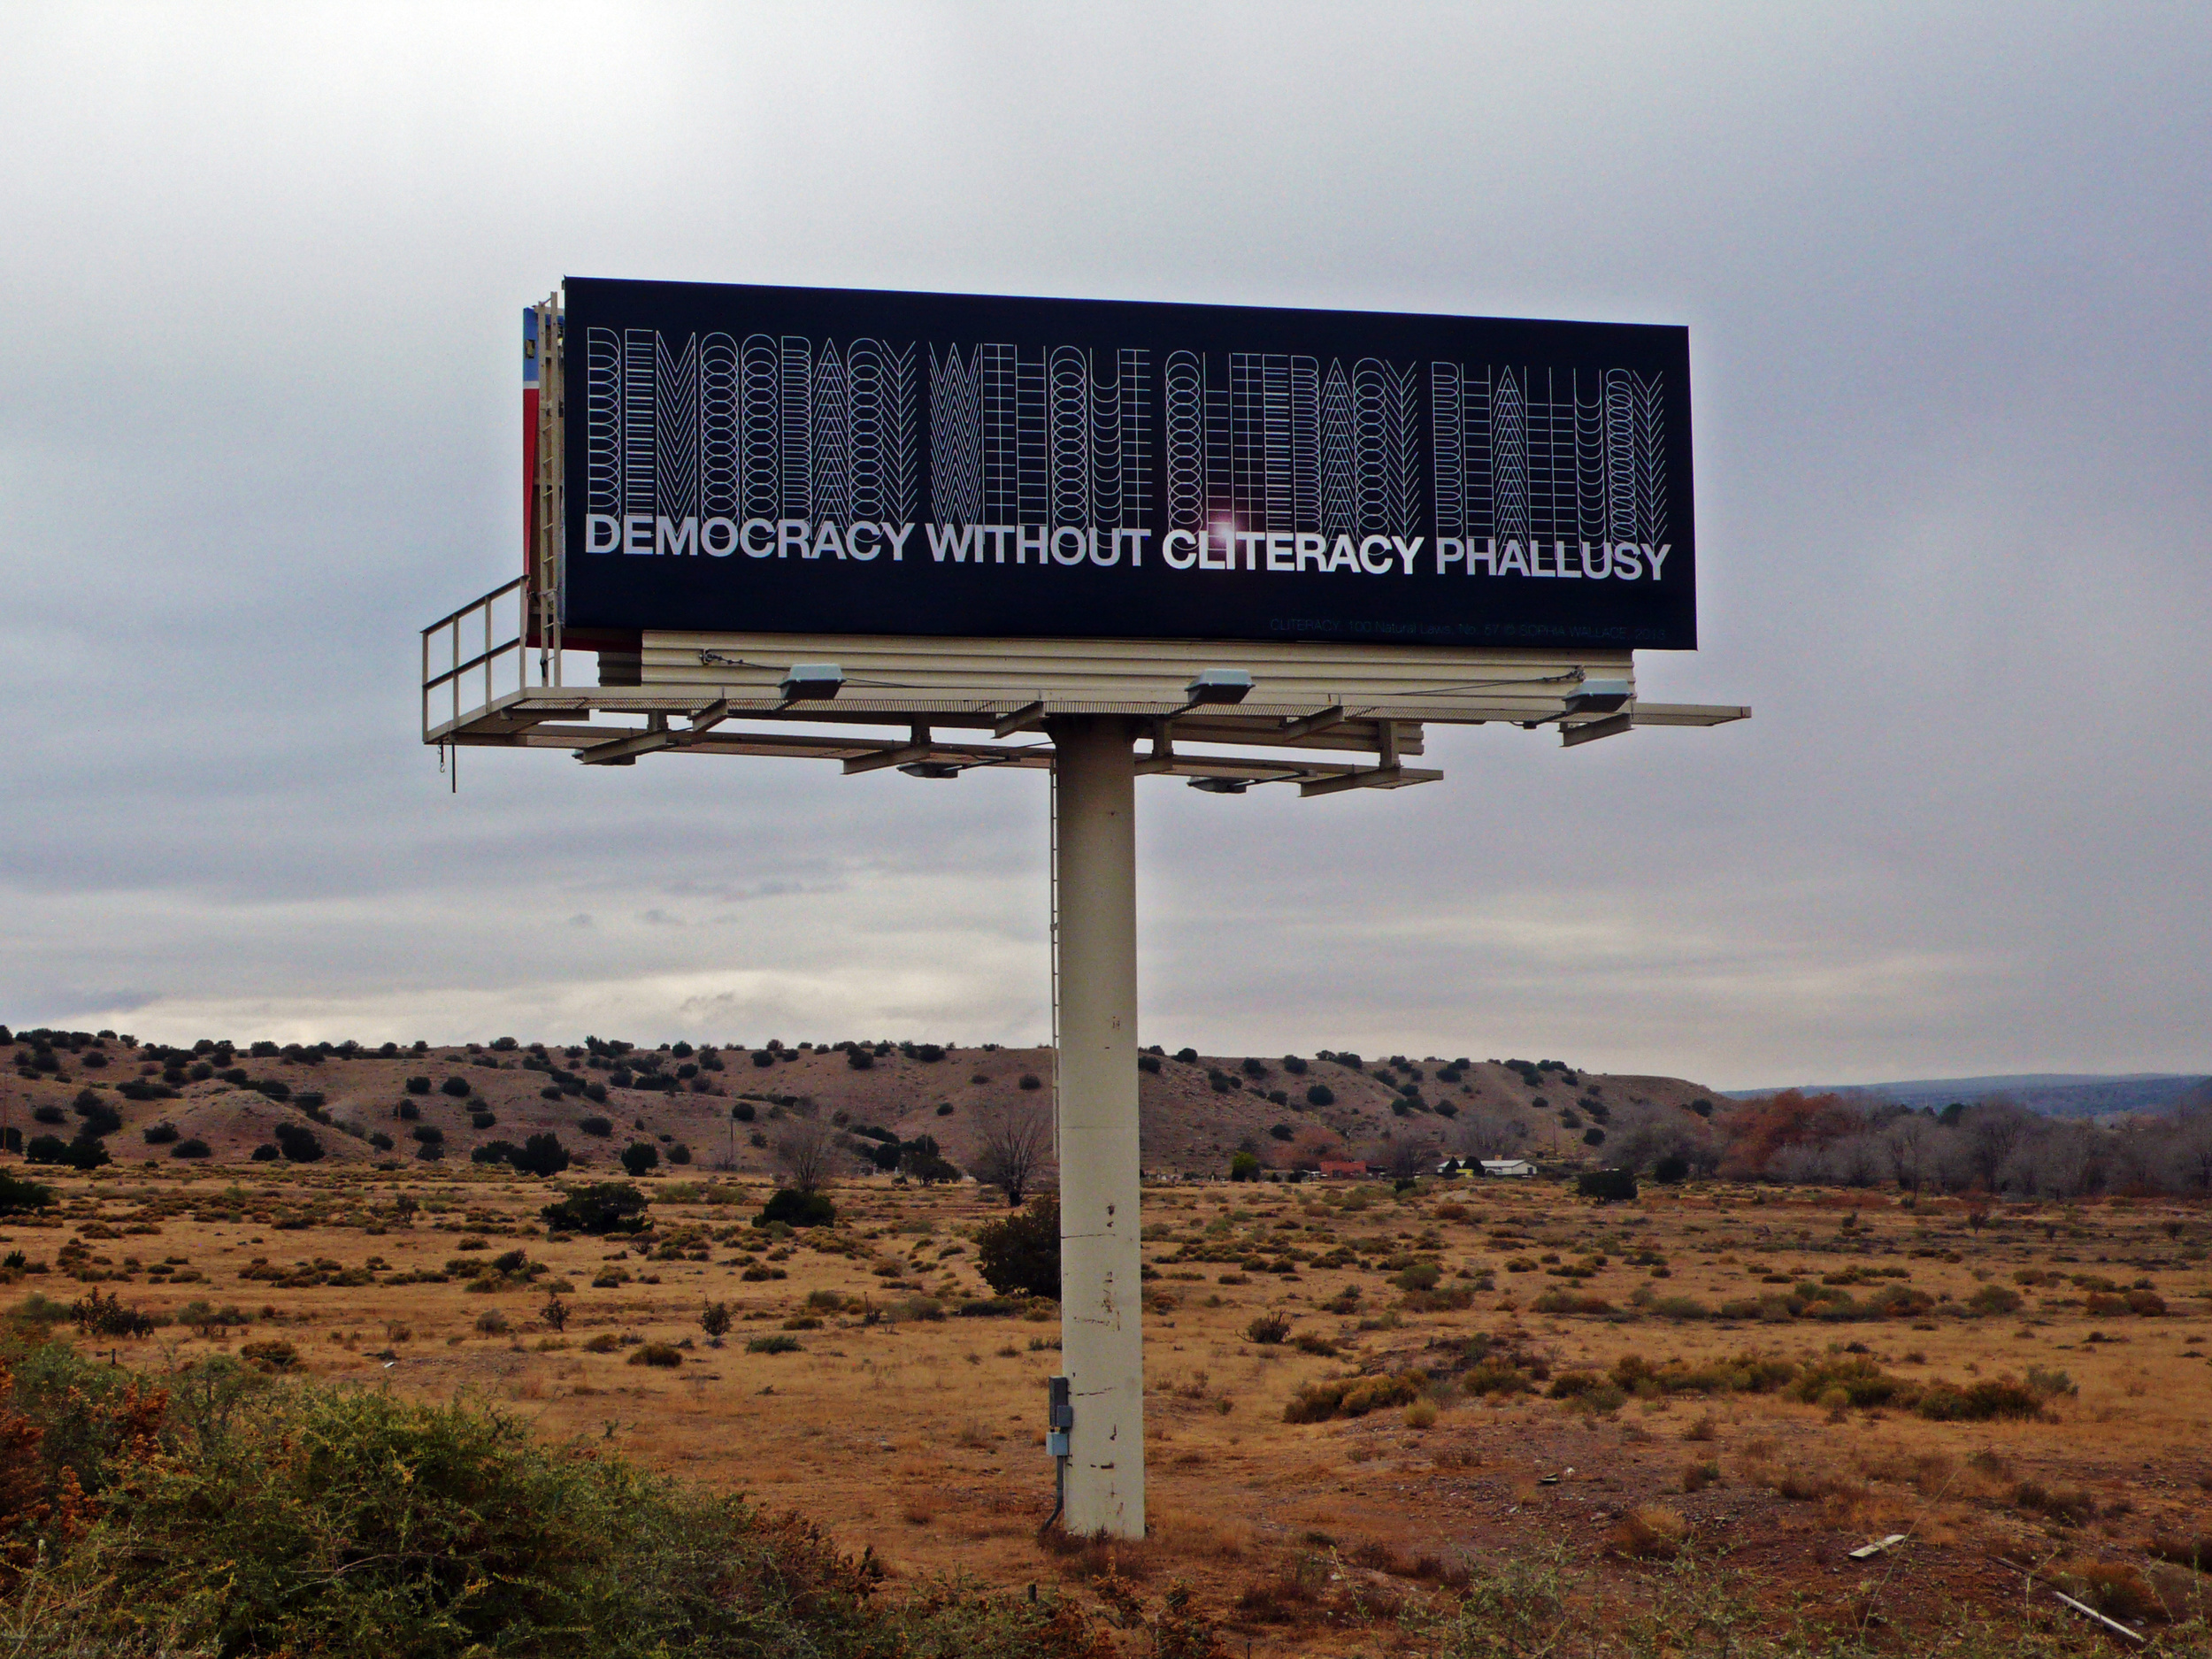 DEMOCRACY WITHOUT CLITERACY PHALLUSY,  Natural Law No. 57, 2013  Vinyl, Billboard 35 x 10.6 feet Exhibition on view November 11-25, 2013 on I-25 Southbound near mile marker 247.2.